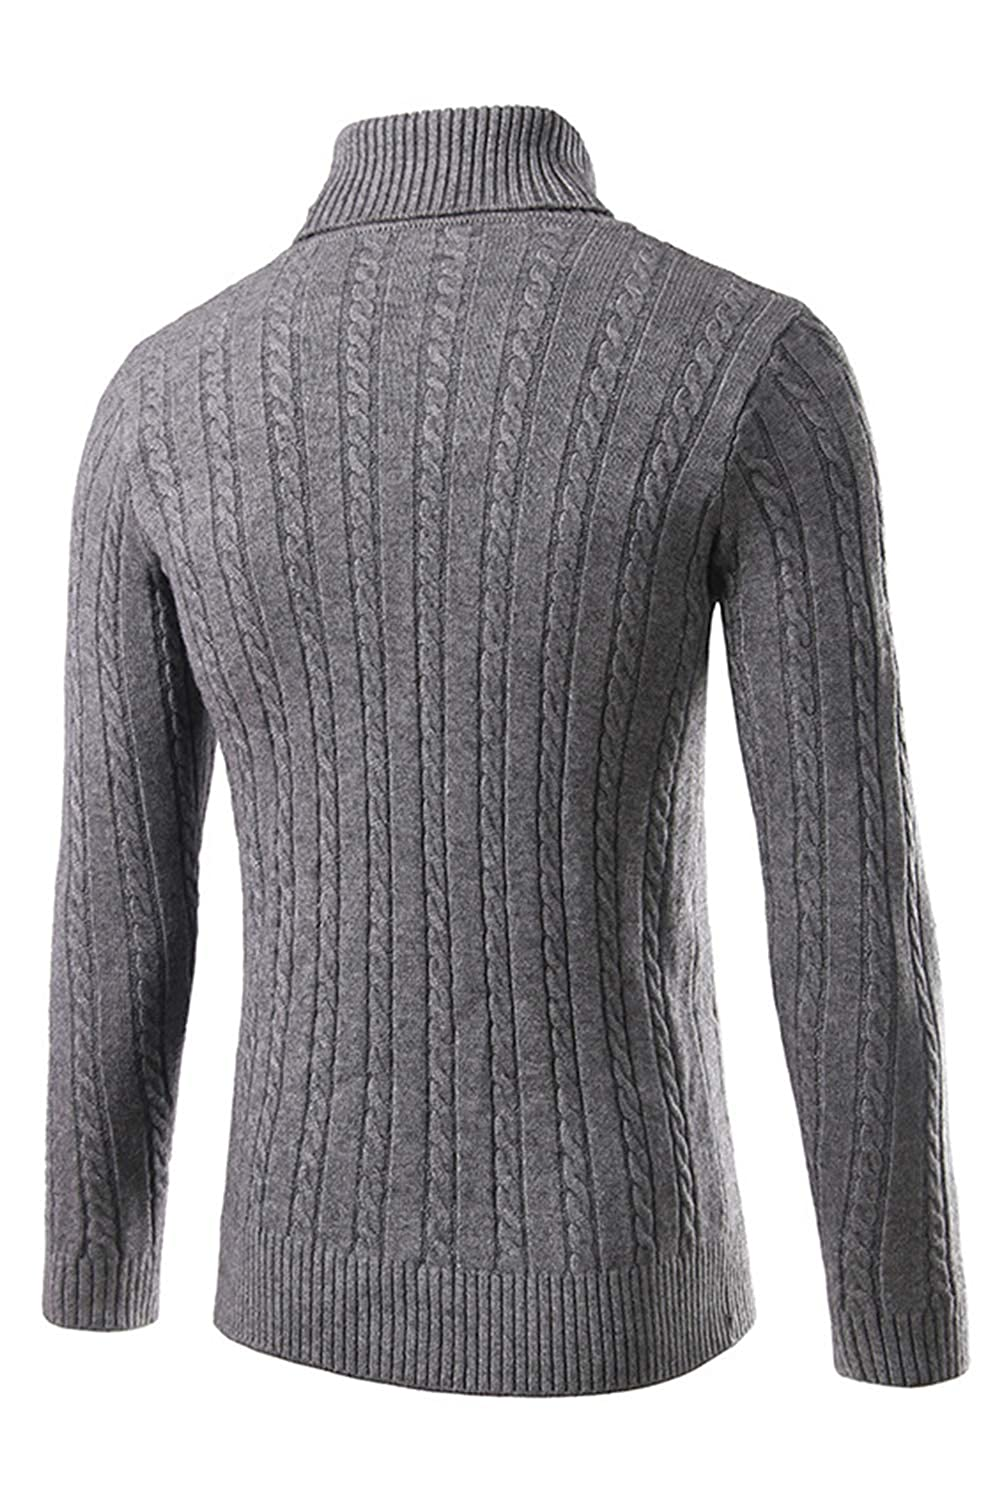 Mens Sweaters Long Sleeve High Neck Warm Heavyweight Pullover Tops